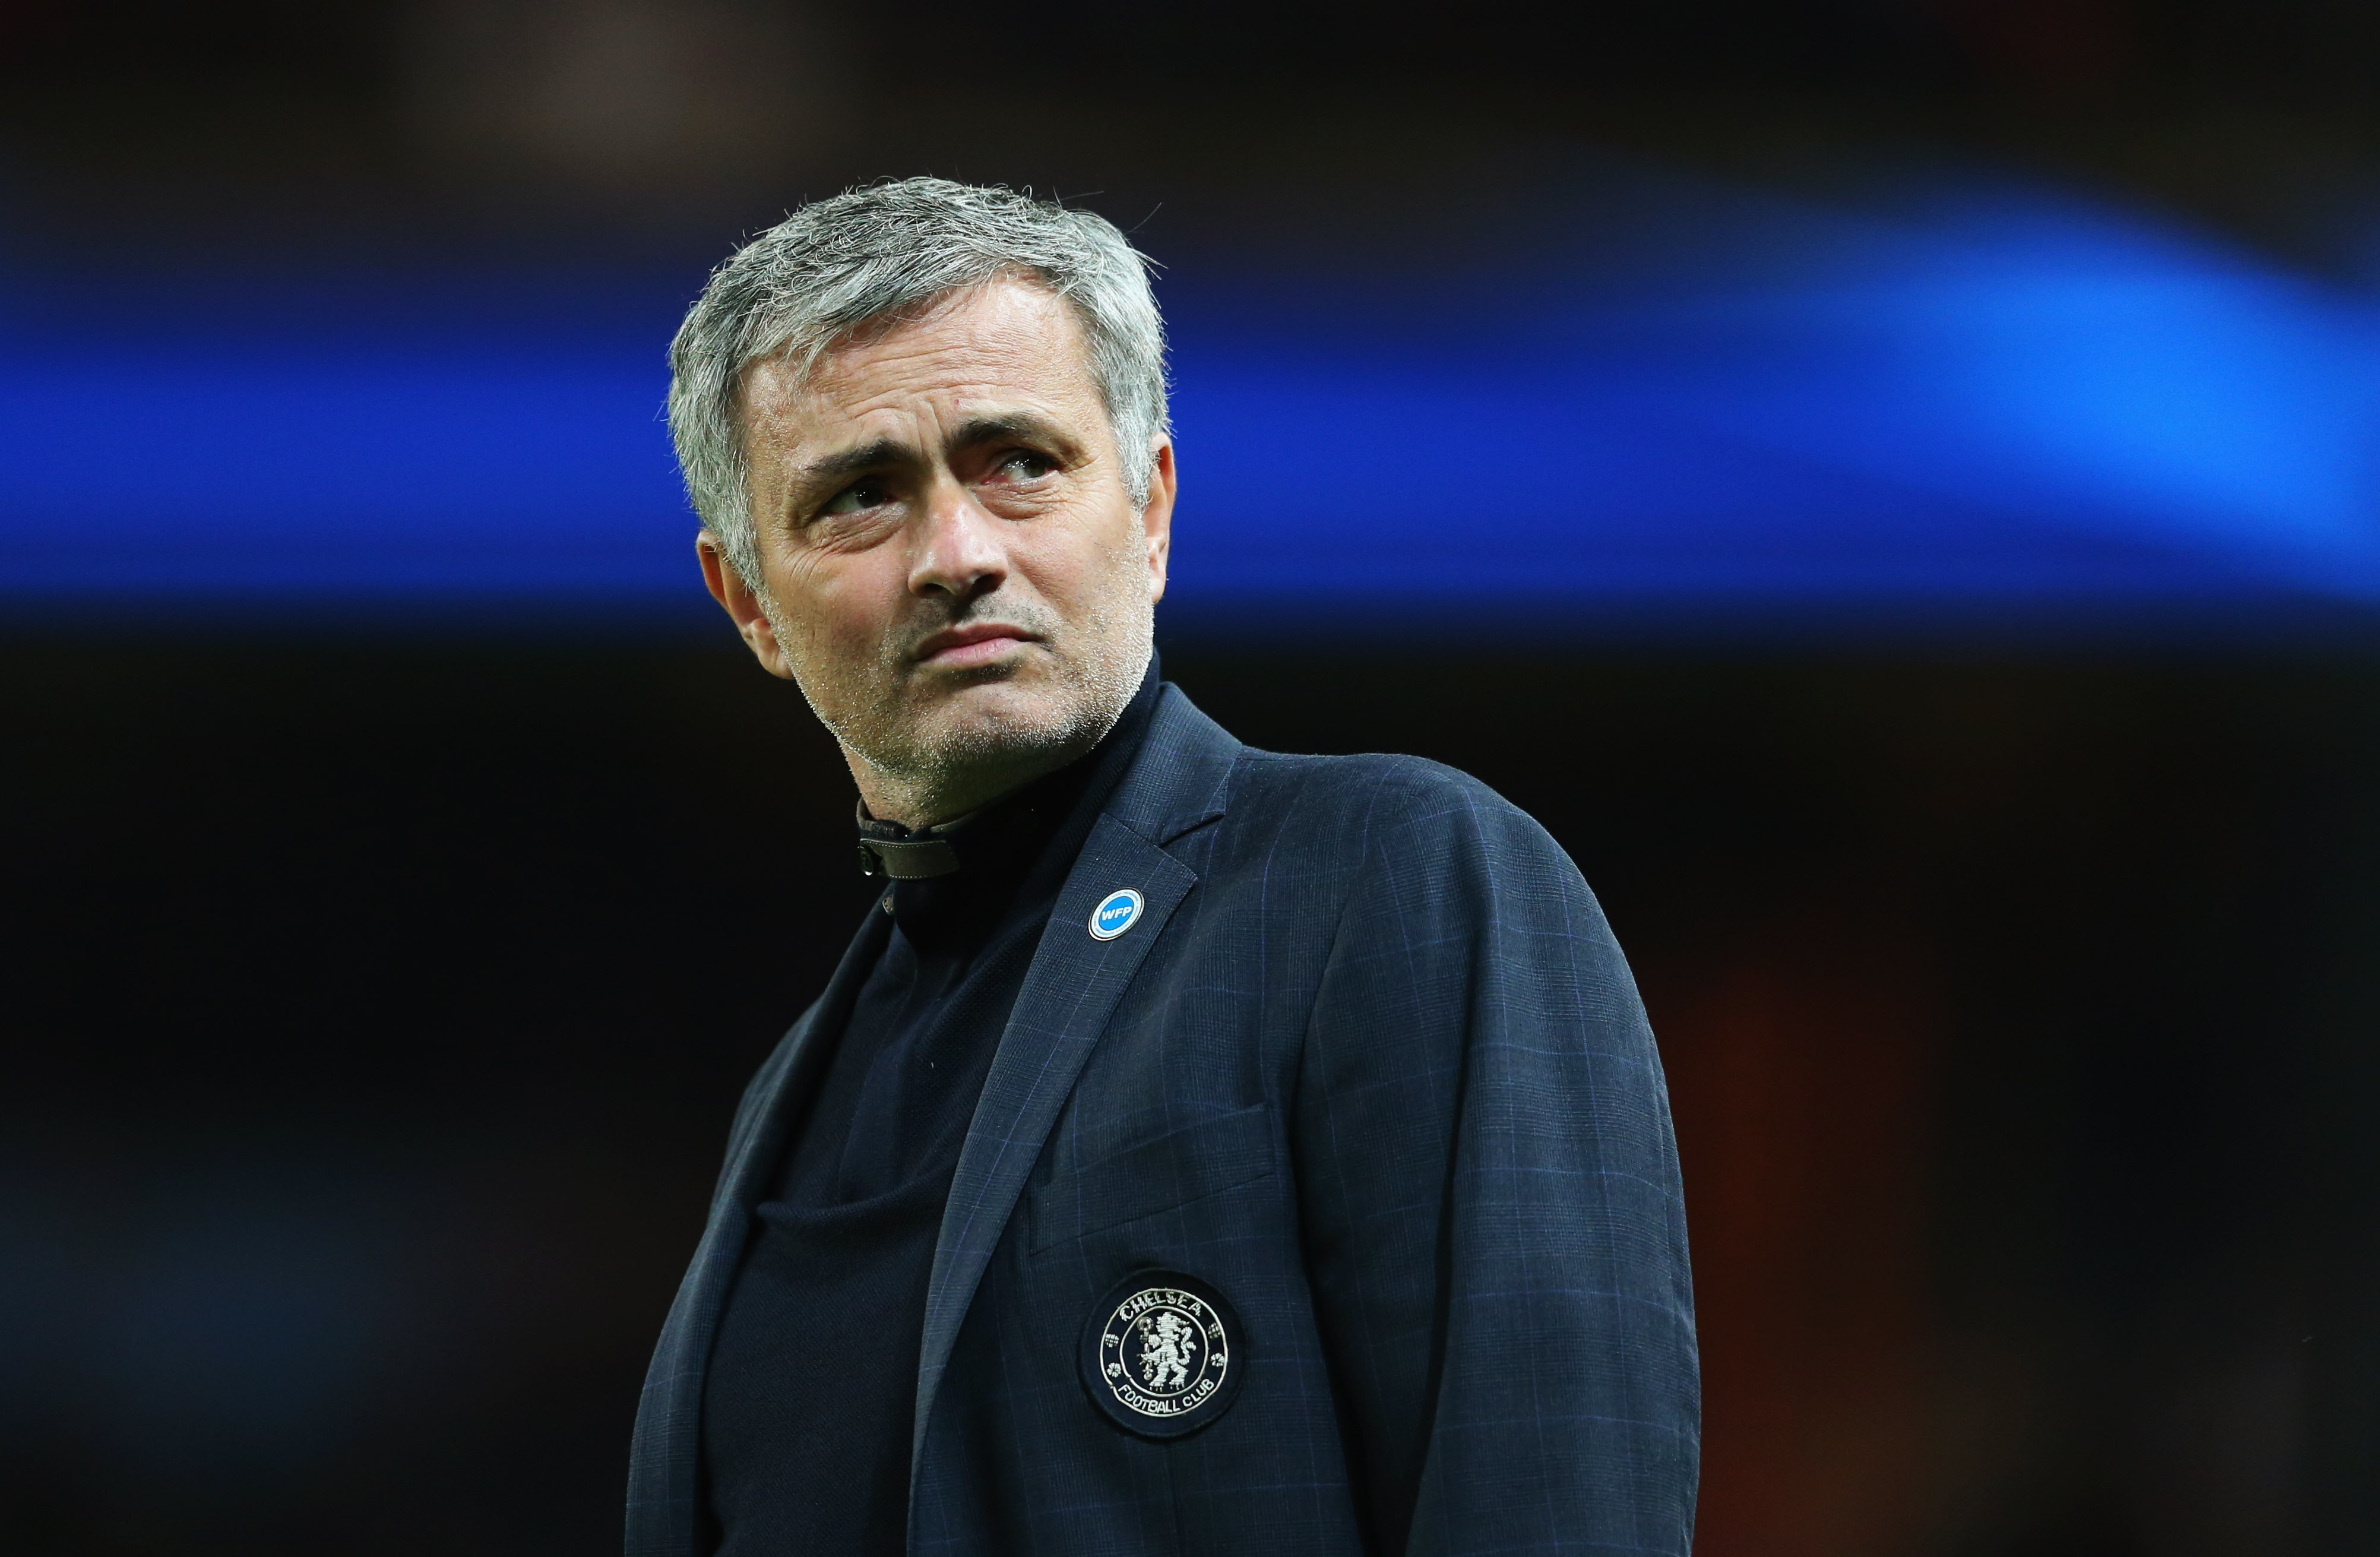 Manchester United target Jose Mourinho wanted by Indonesian national team